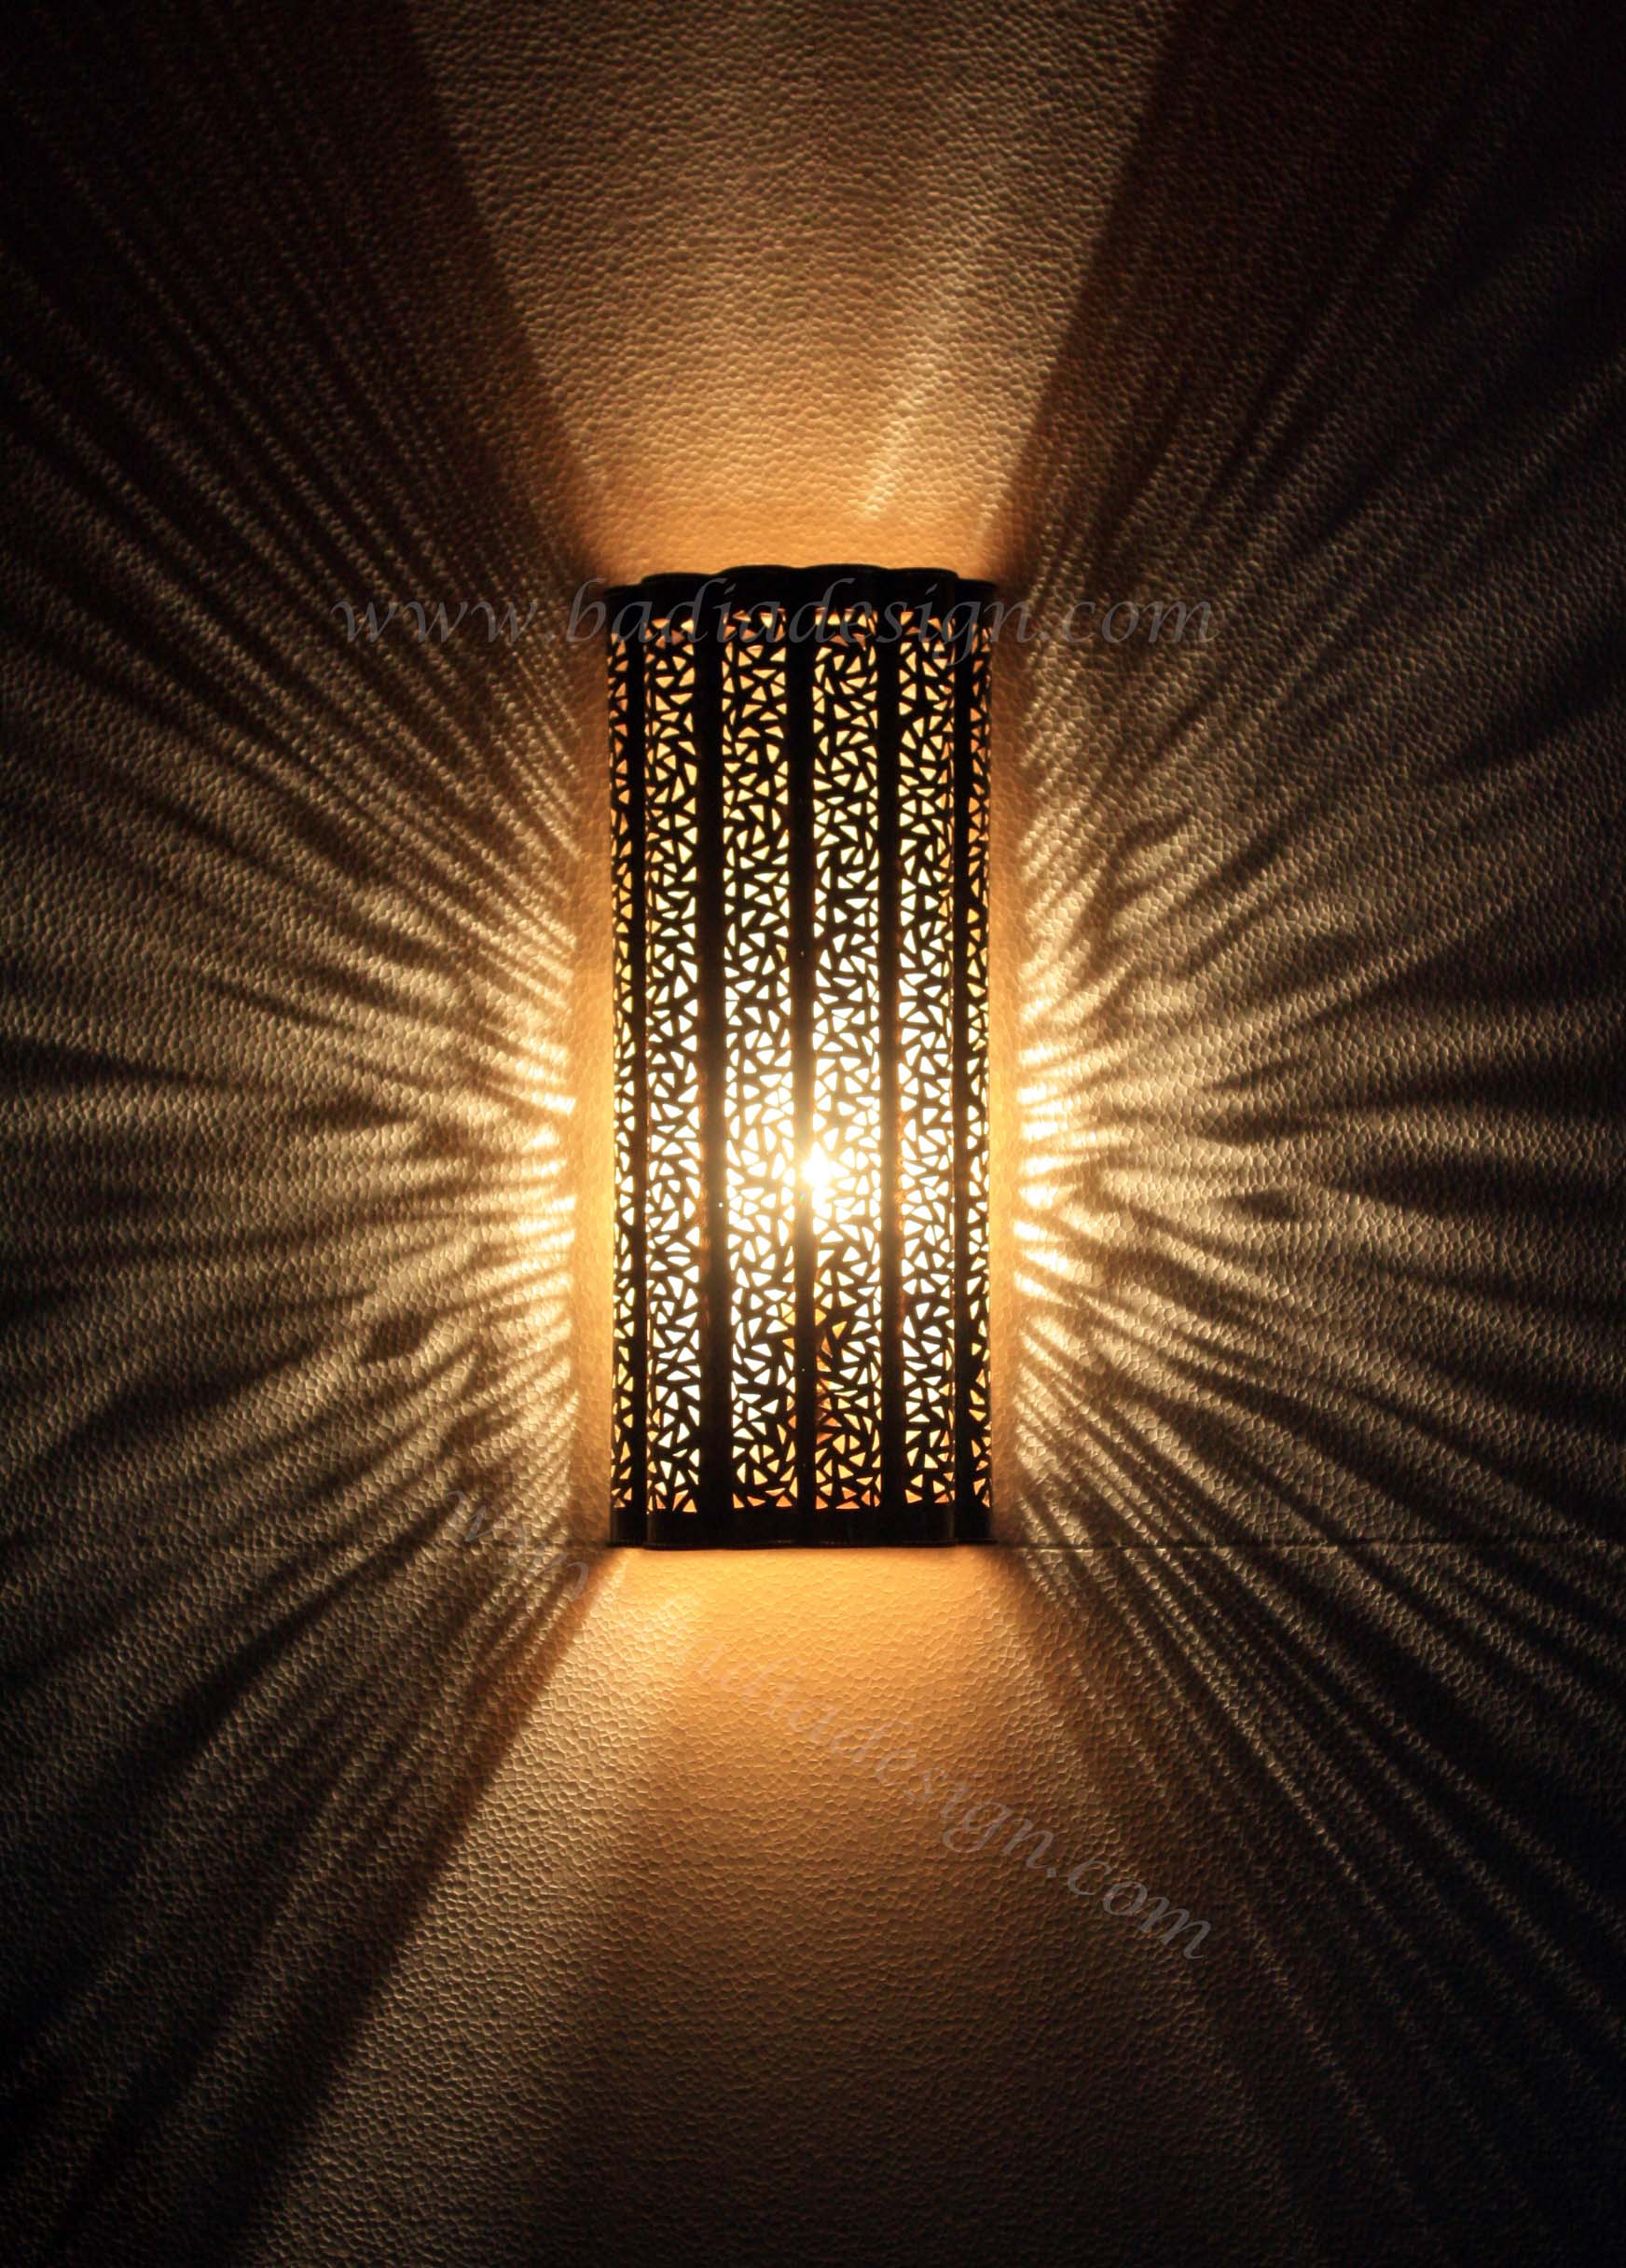 moroccan-lighting-washington-dc.jpg